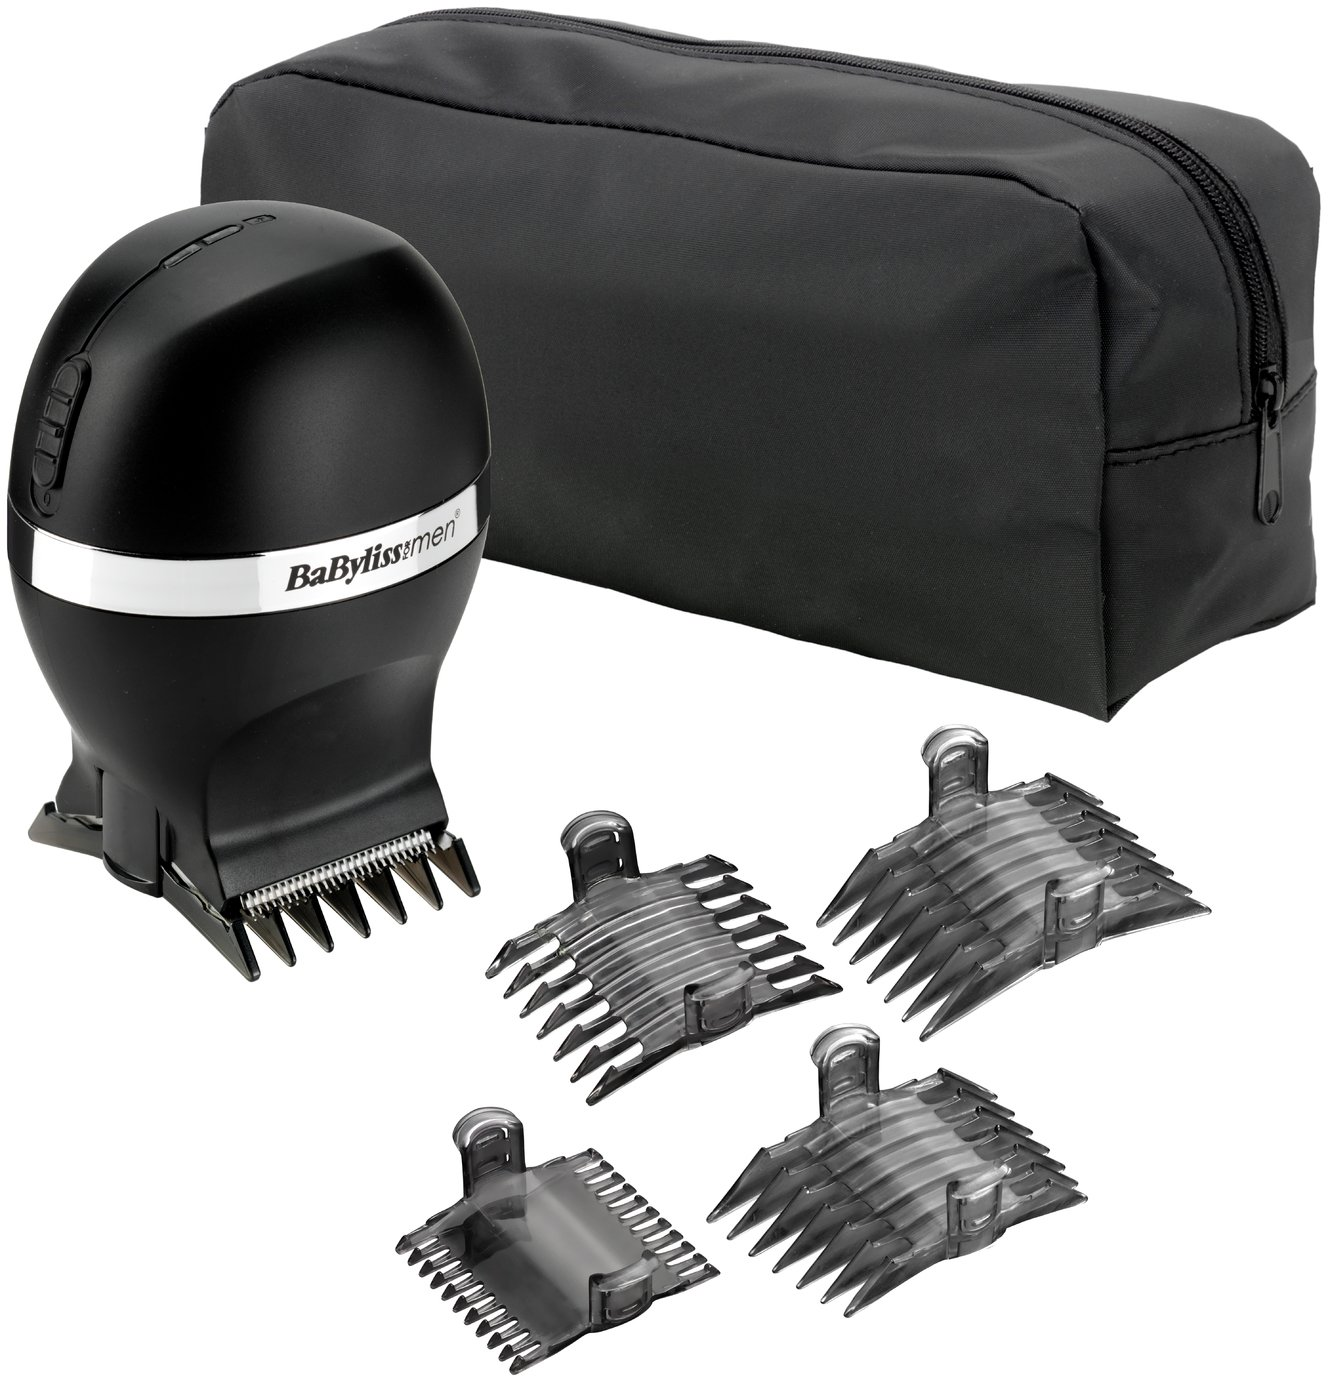 BaByliss - for Men - Smooth Glide - Hair Clippers